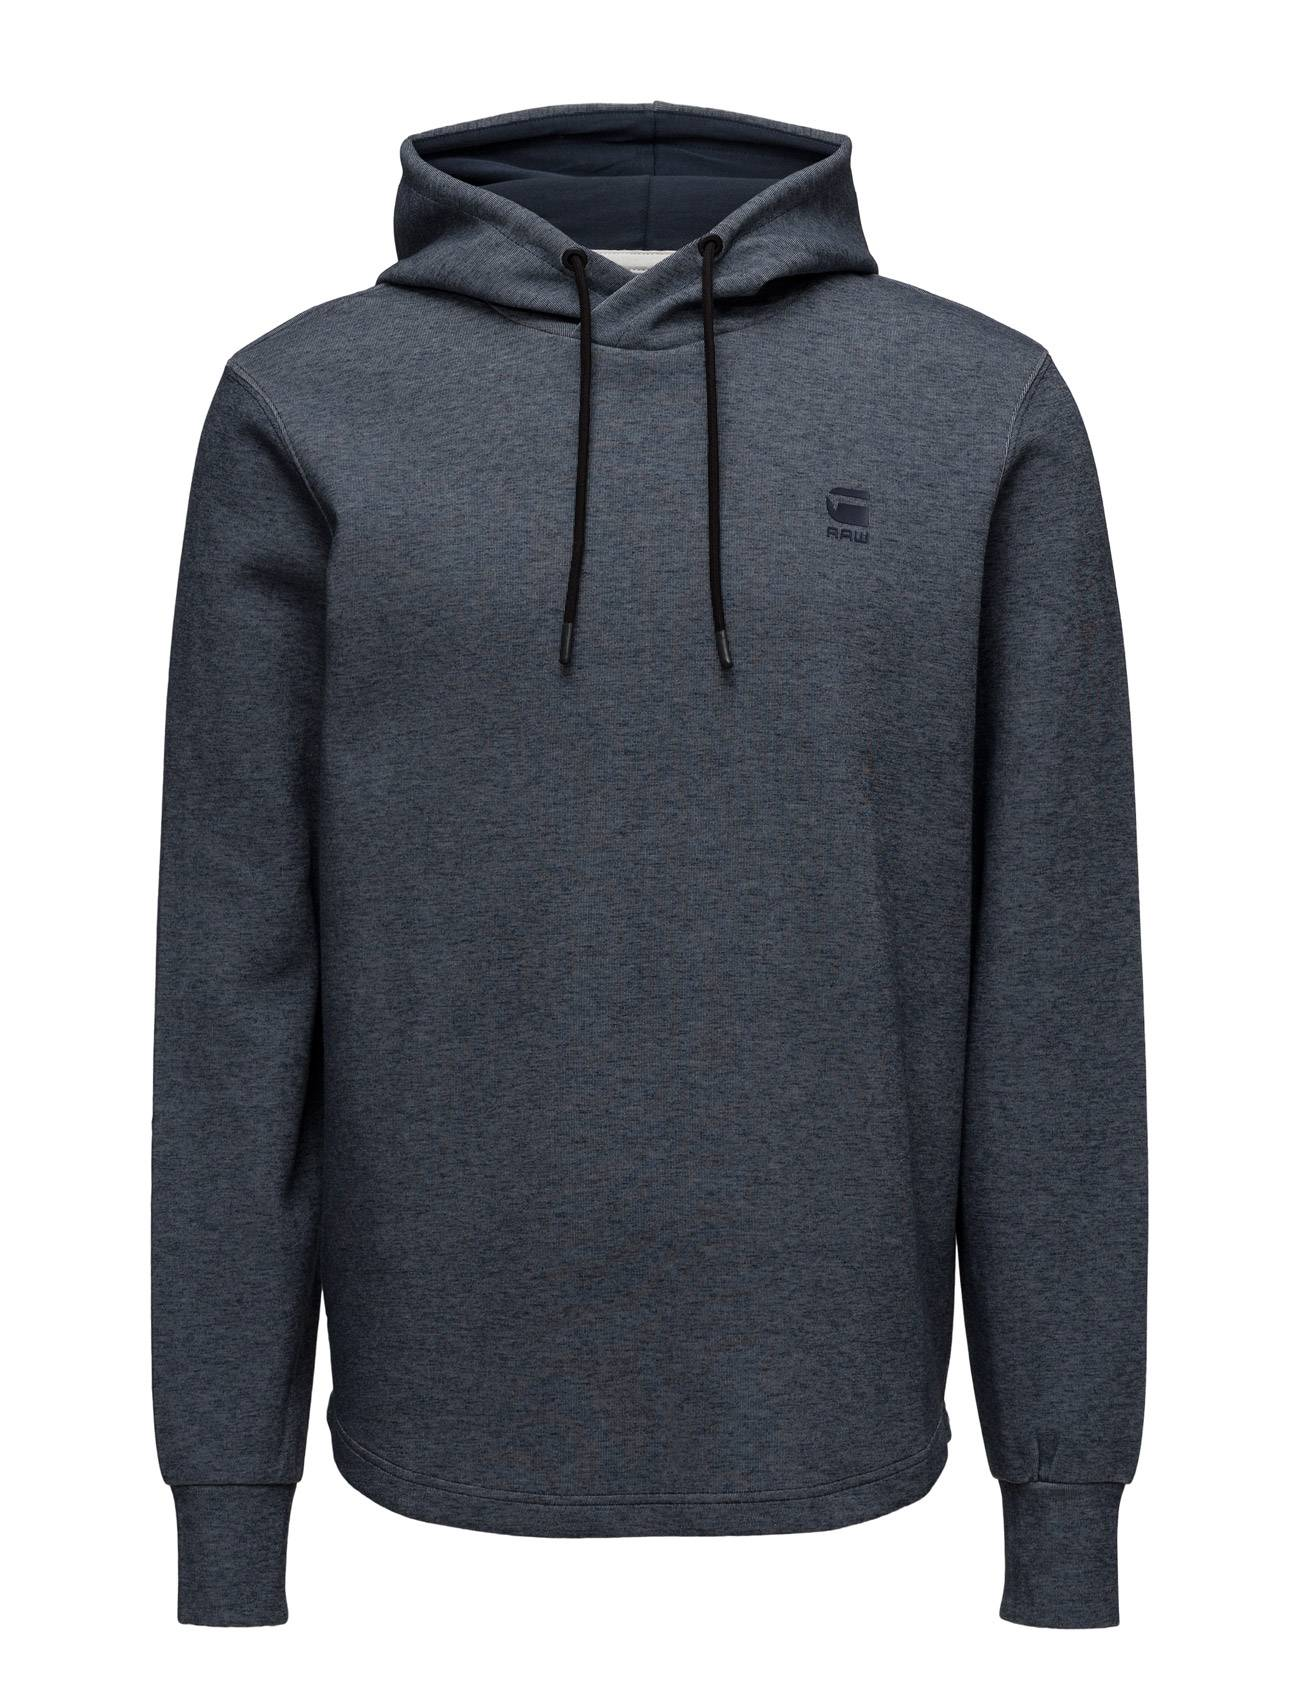 G-star Calow Zip Hooded Sw L